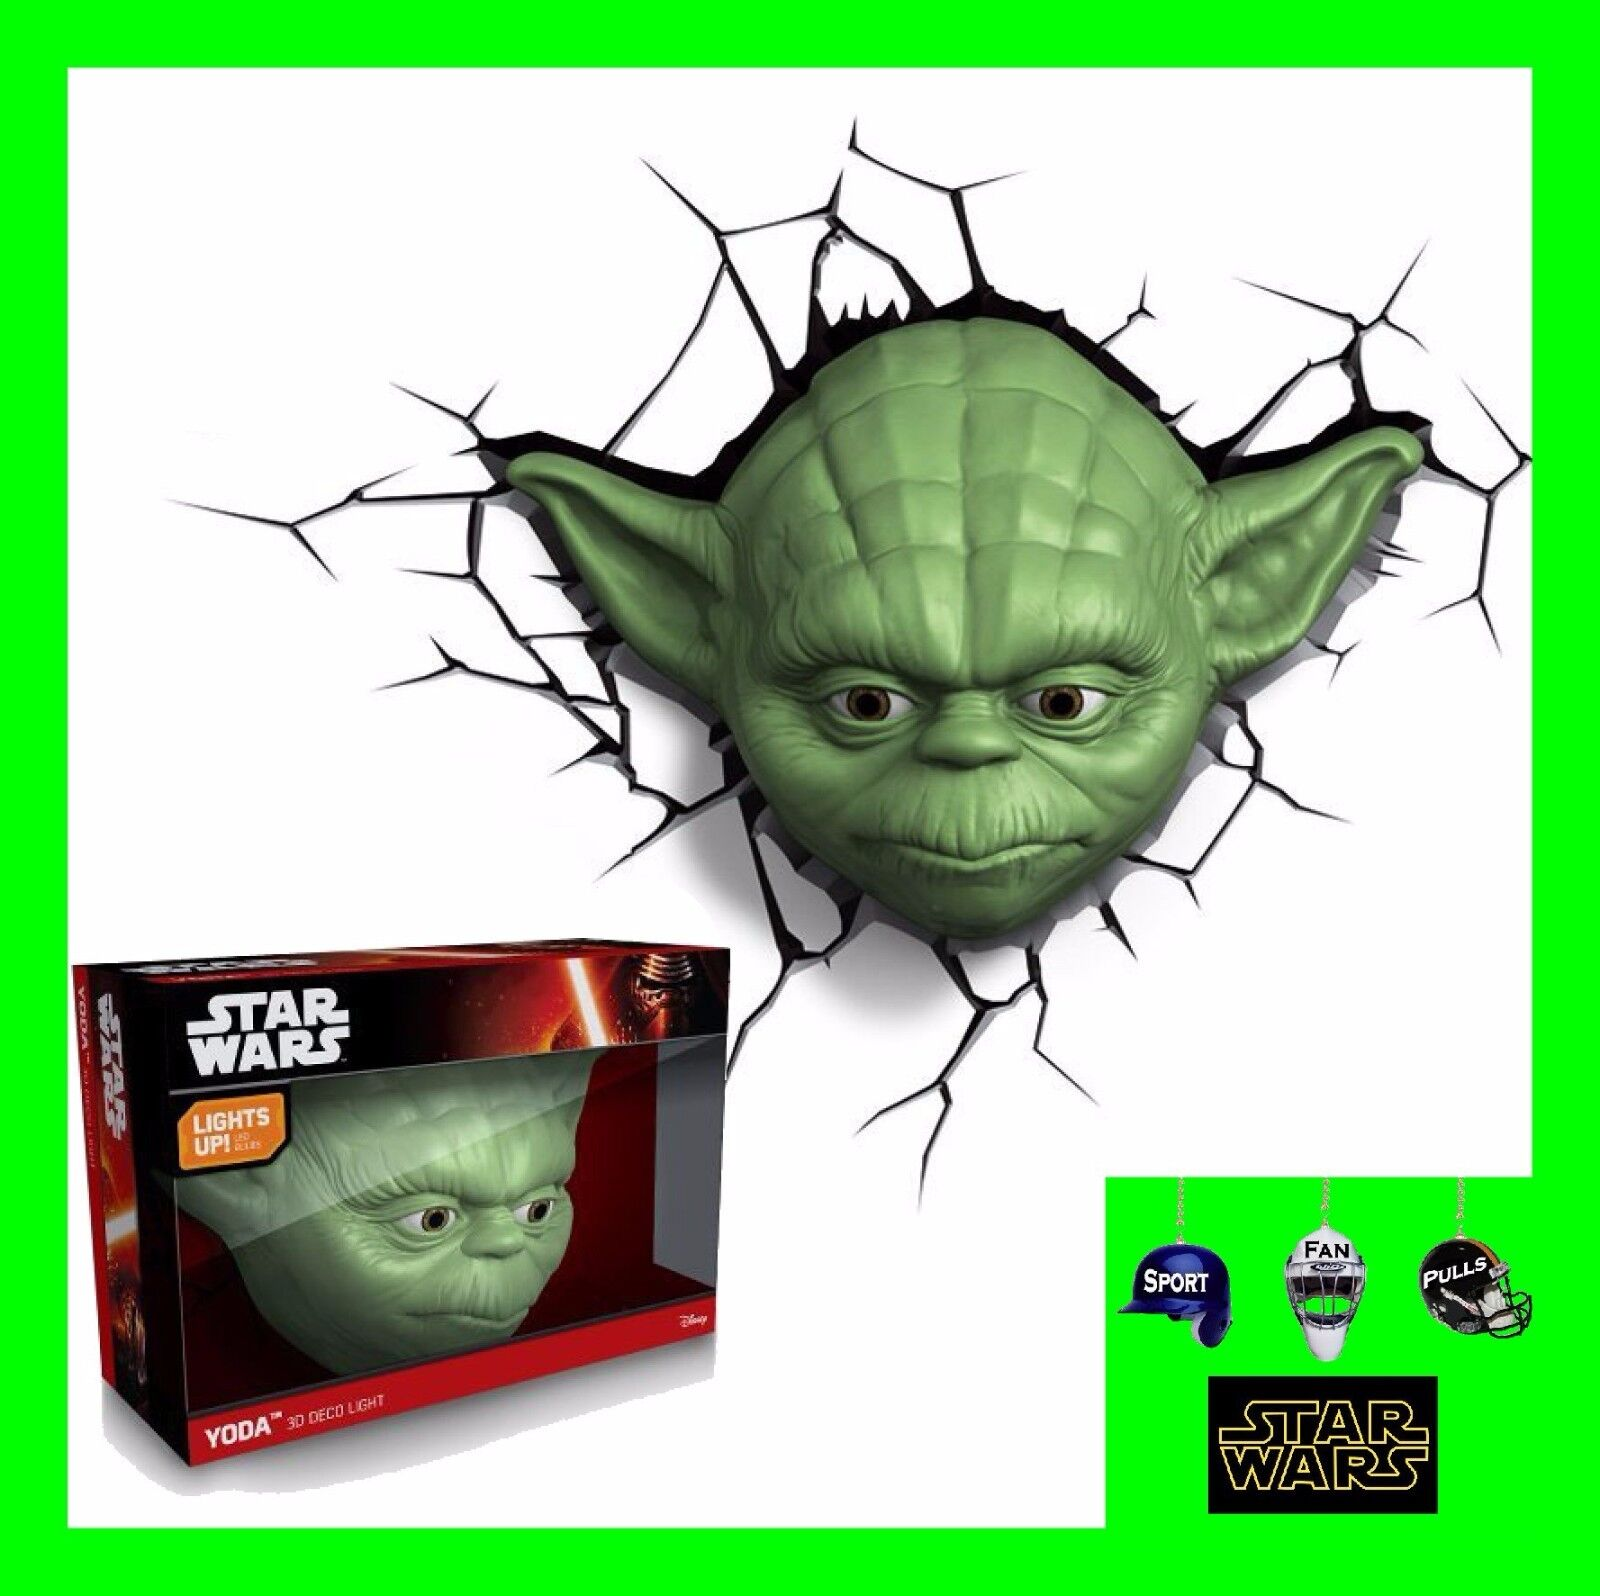 3D FX LED WALL DECO LIGHT - STAR WARS YODA FACE AND OR HAND WITH LIGHTSABER